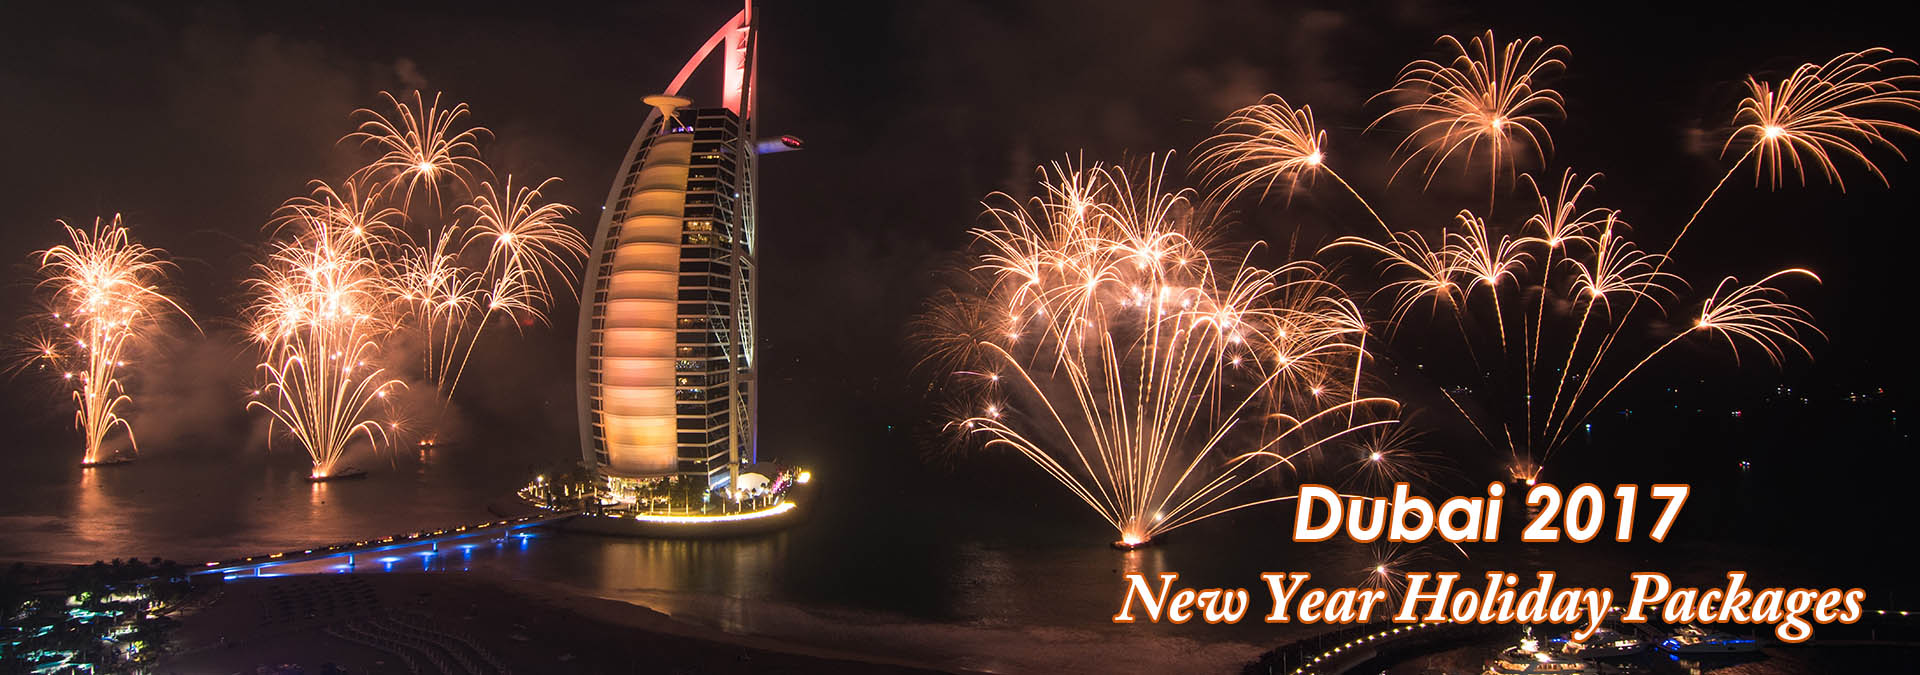 Sabsan Holidays / uae / Dubai New Year 2017 Offers